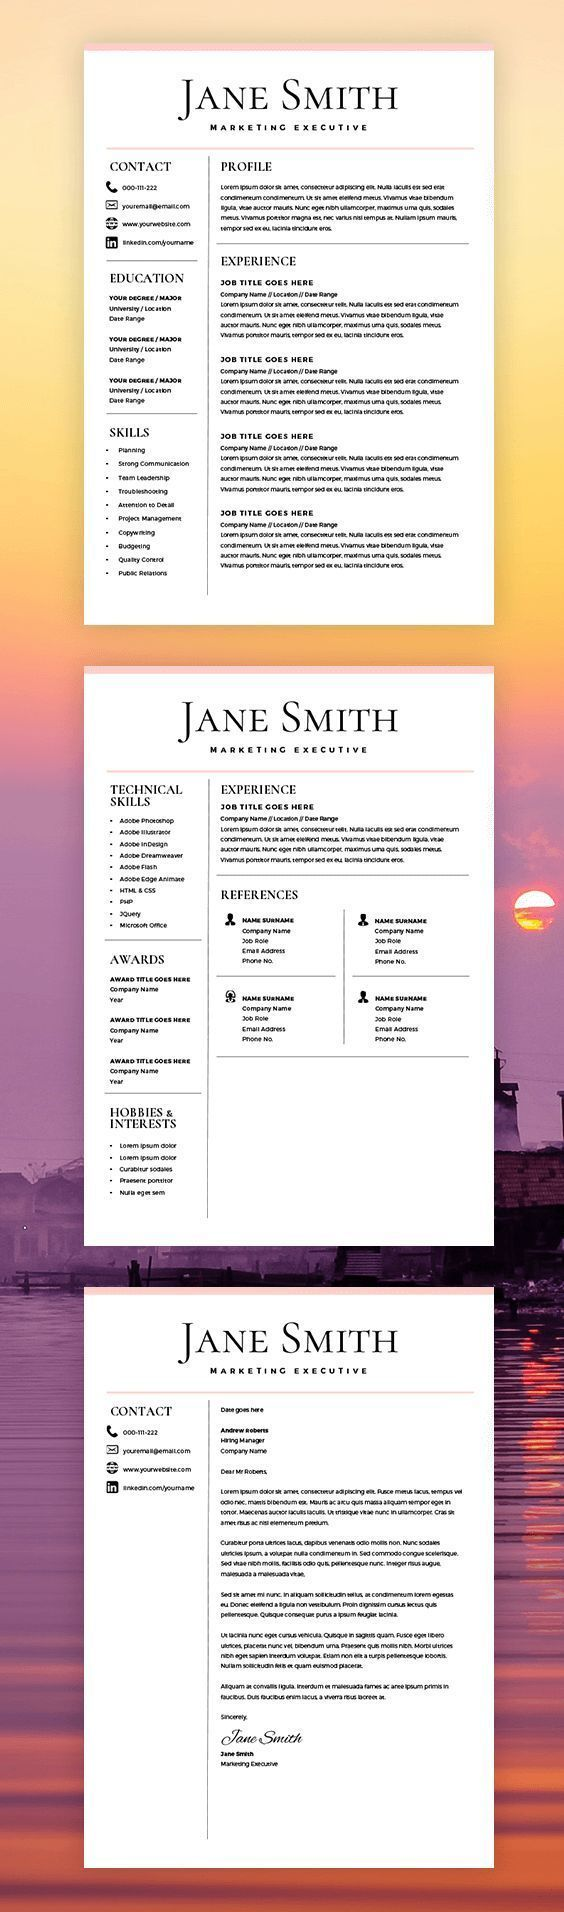 Resume Template Word Mac New Resume Template  Cv Template  Cover Letter  Ms Word On Mac  Pc .